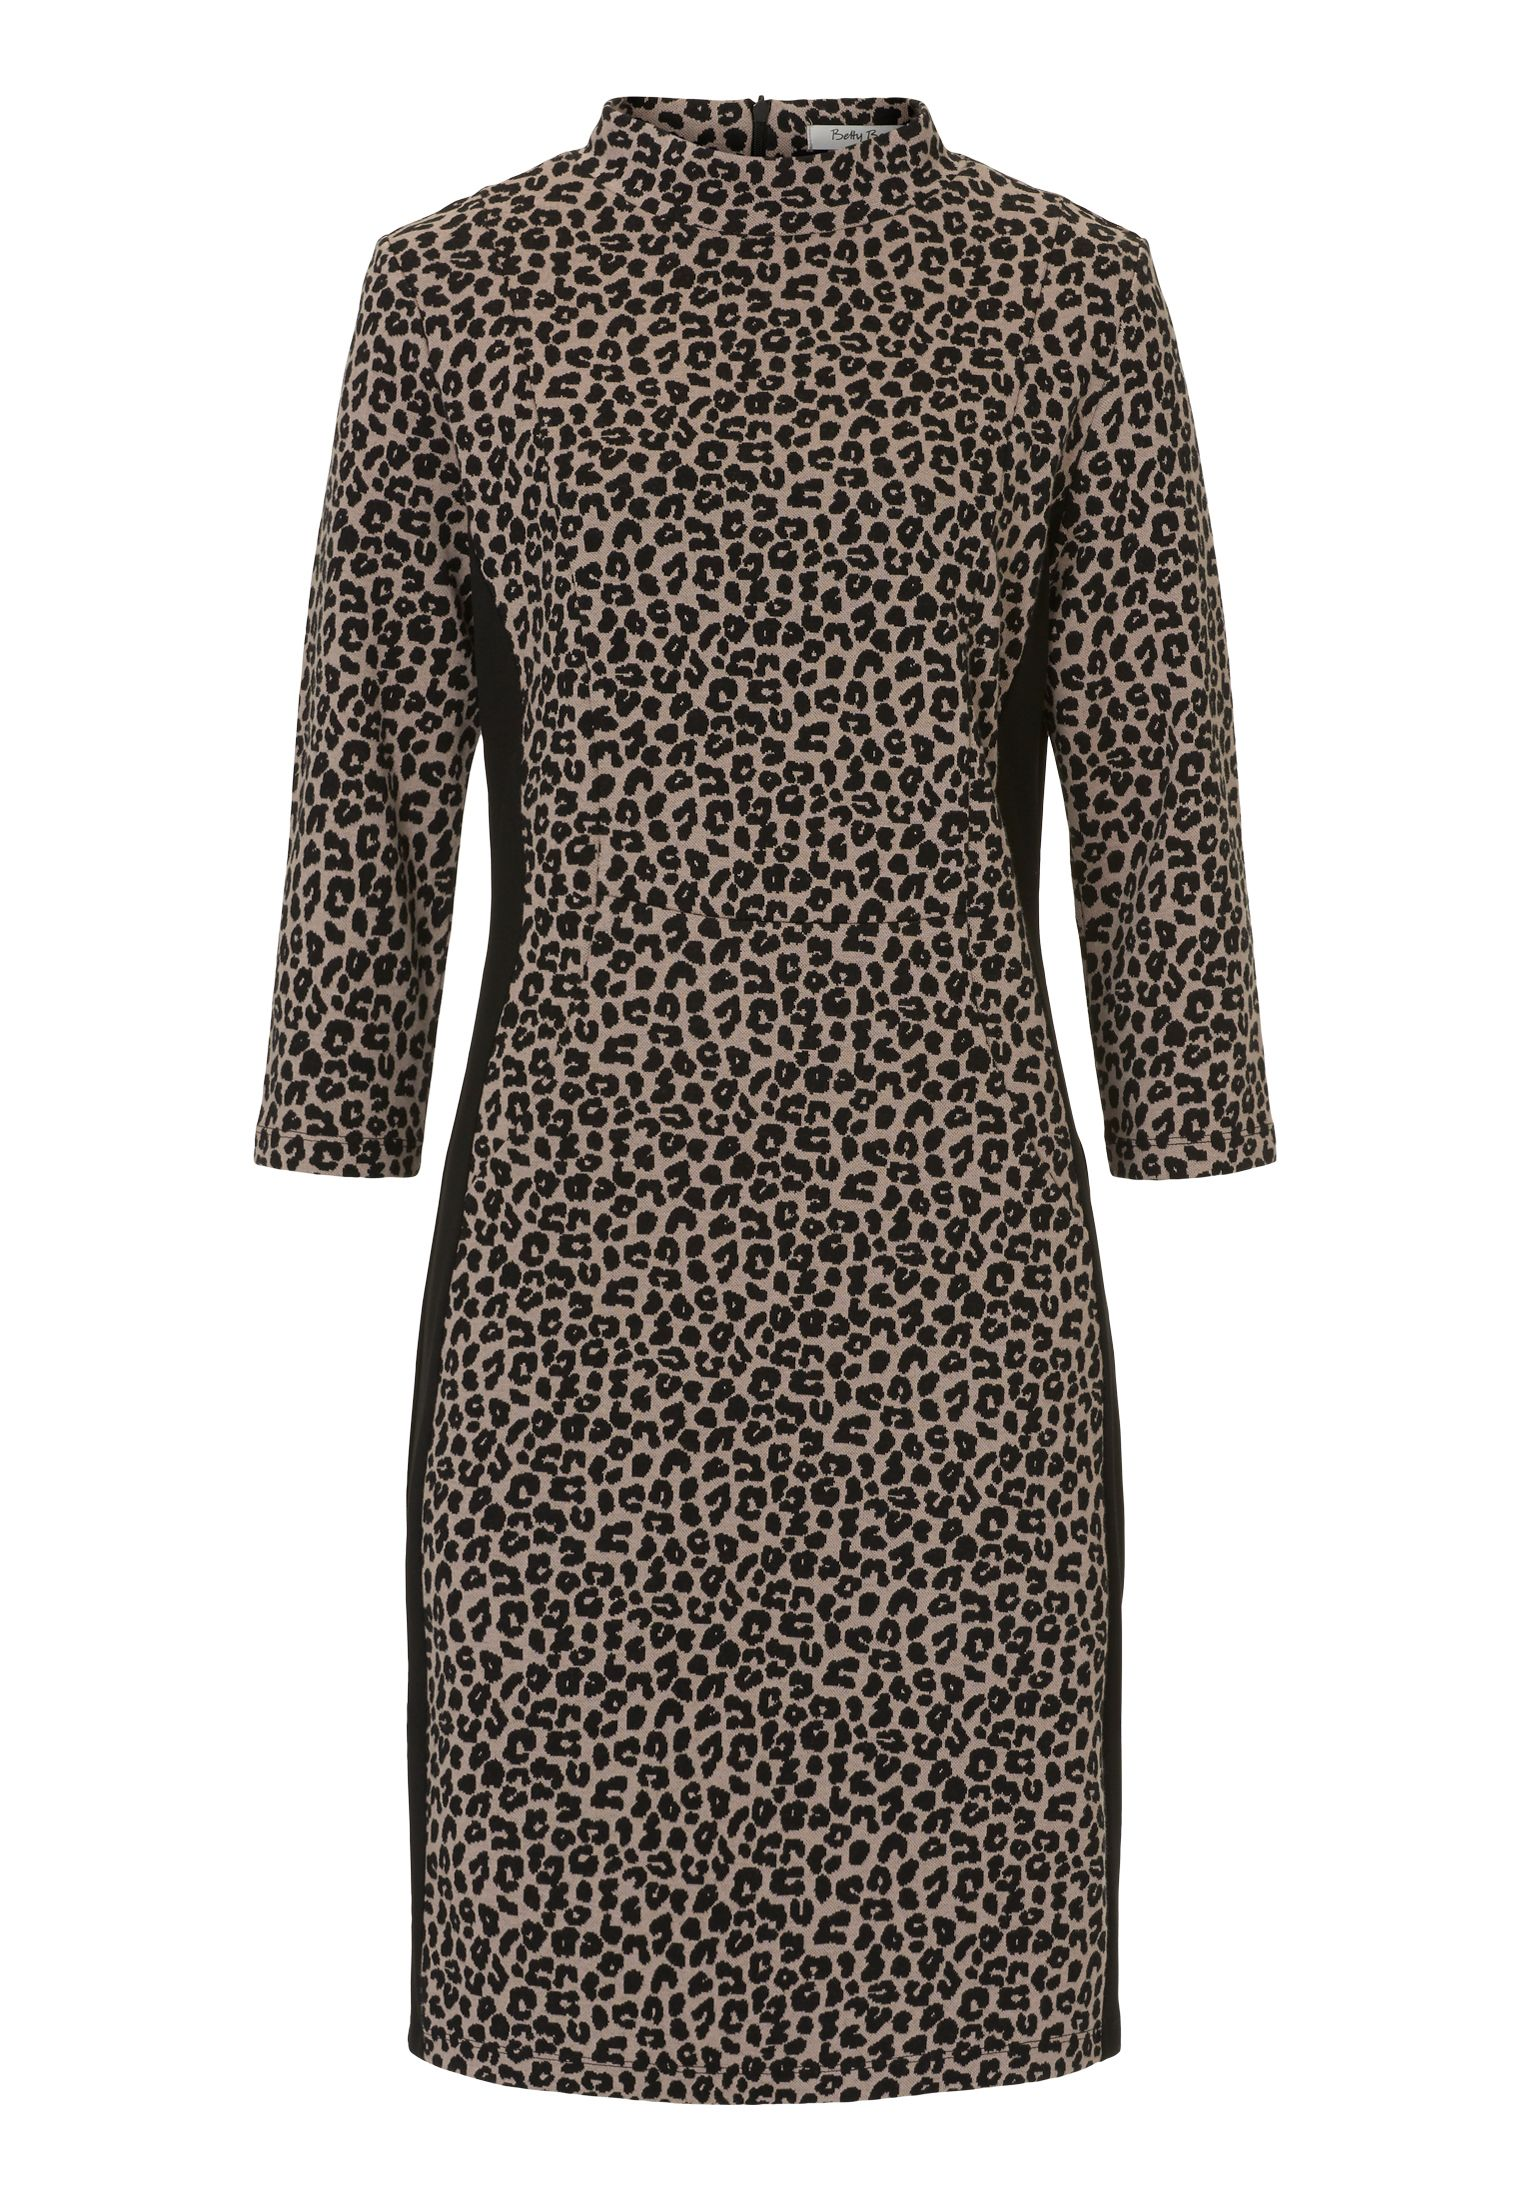 Betty Barclay Animal Print Dress, Multi-Coloured